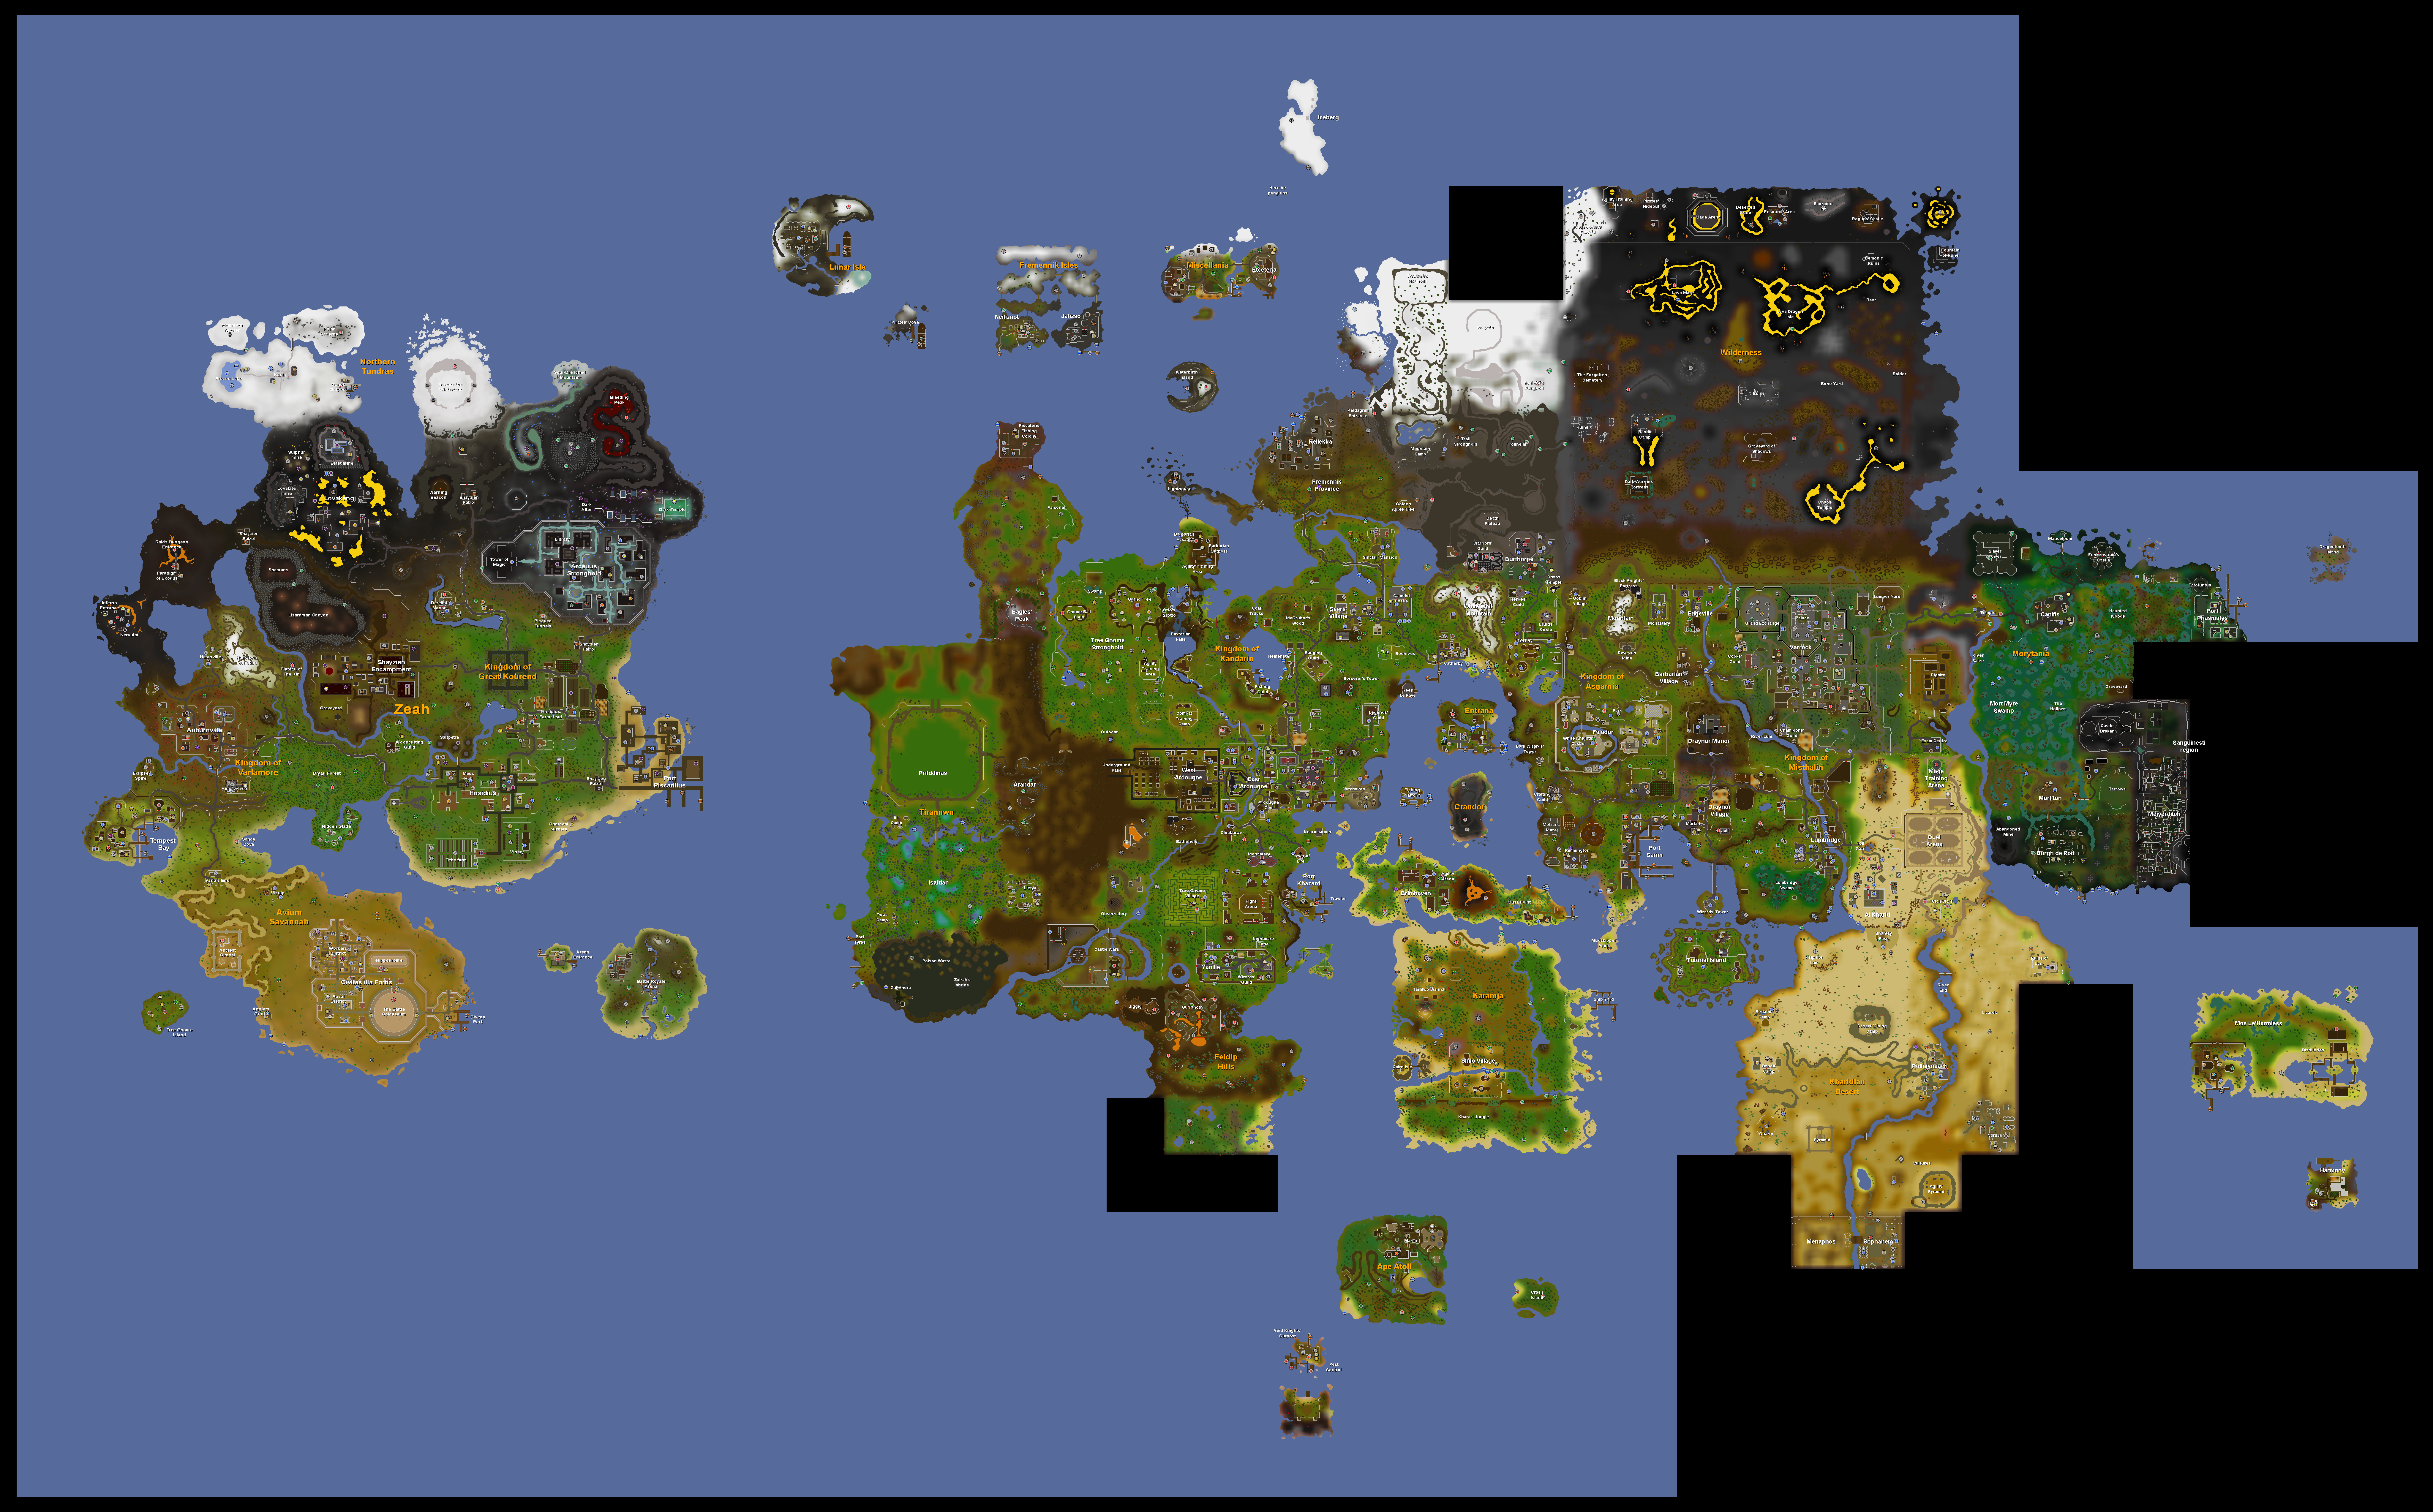 2007 Scape Map Improved Zeah beside the improved world map : 2007scape